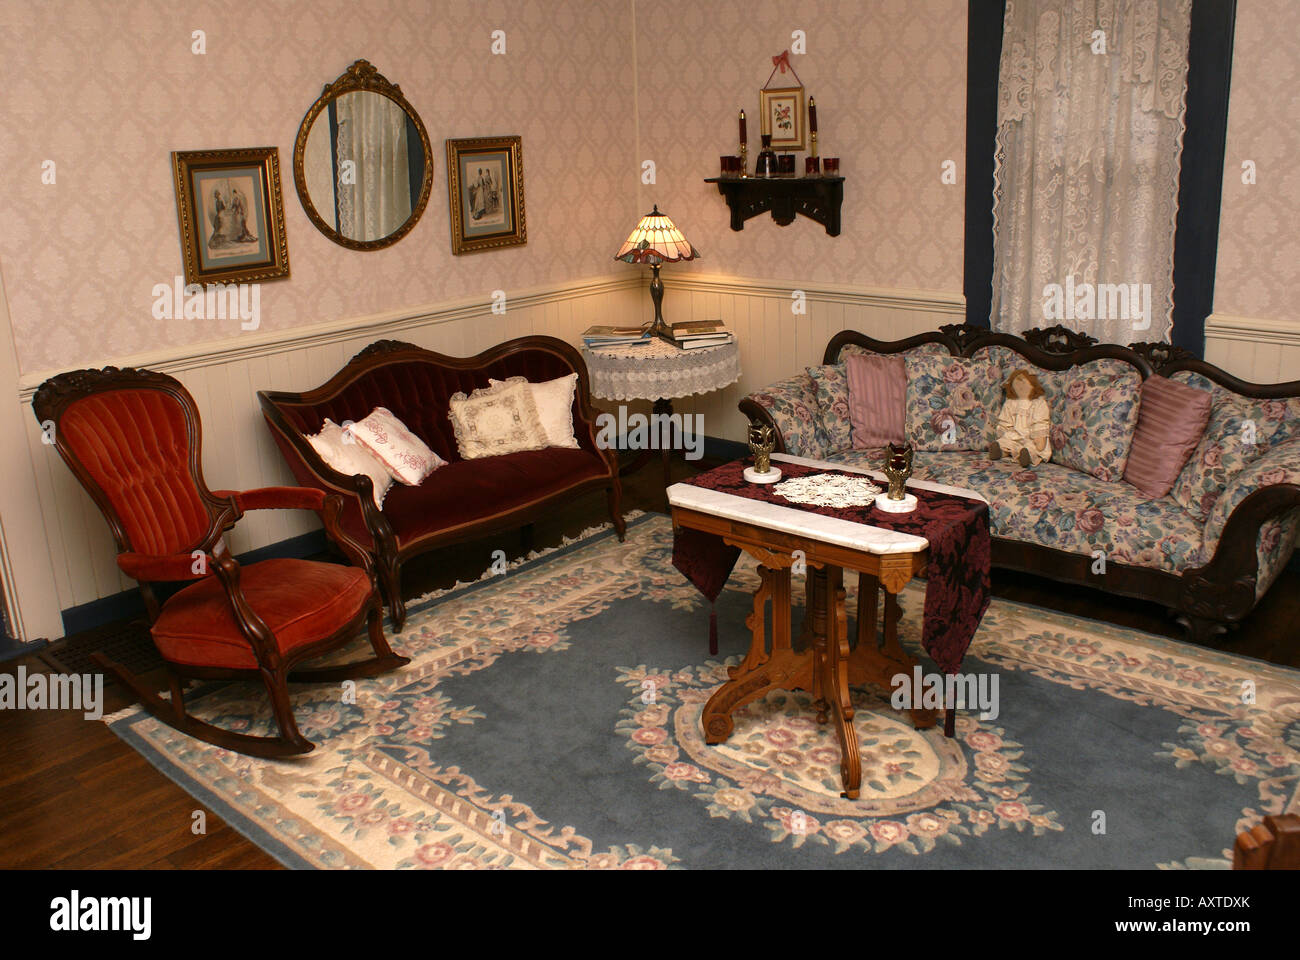 Old Fashioned Living Room Stock Photo: 16913994 - Alamy